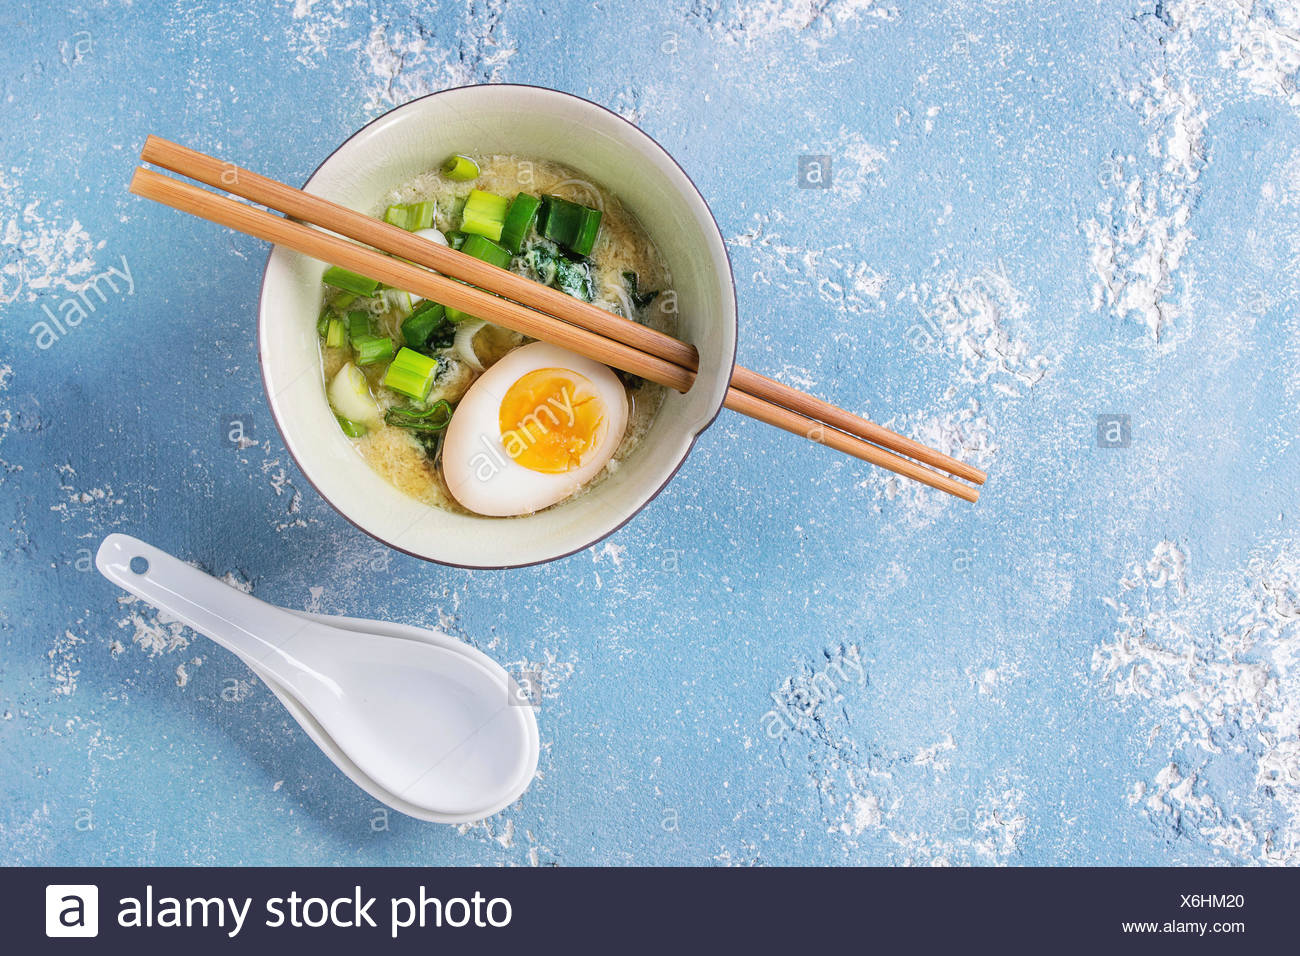 Bowl with asian style soup with scrambled eggs, half of marinated egg, spring onion, spinach served with wood chopsticks and spoons over blue texture  - Stock Image